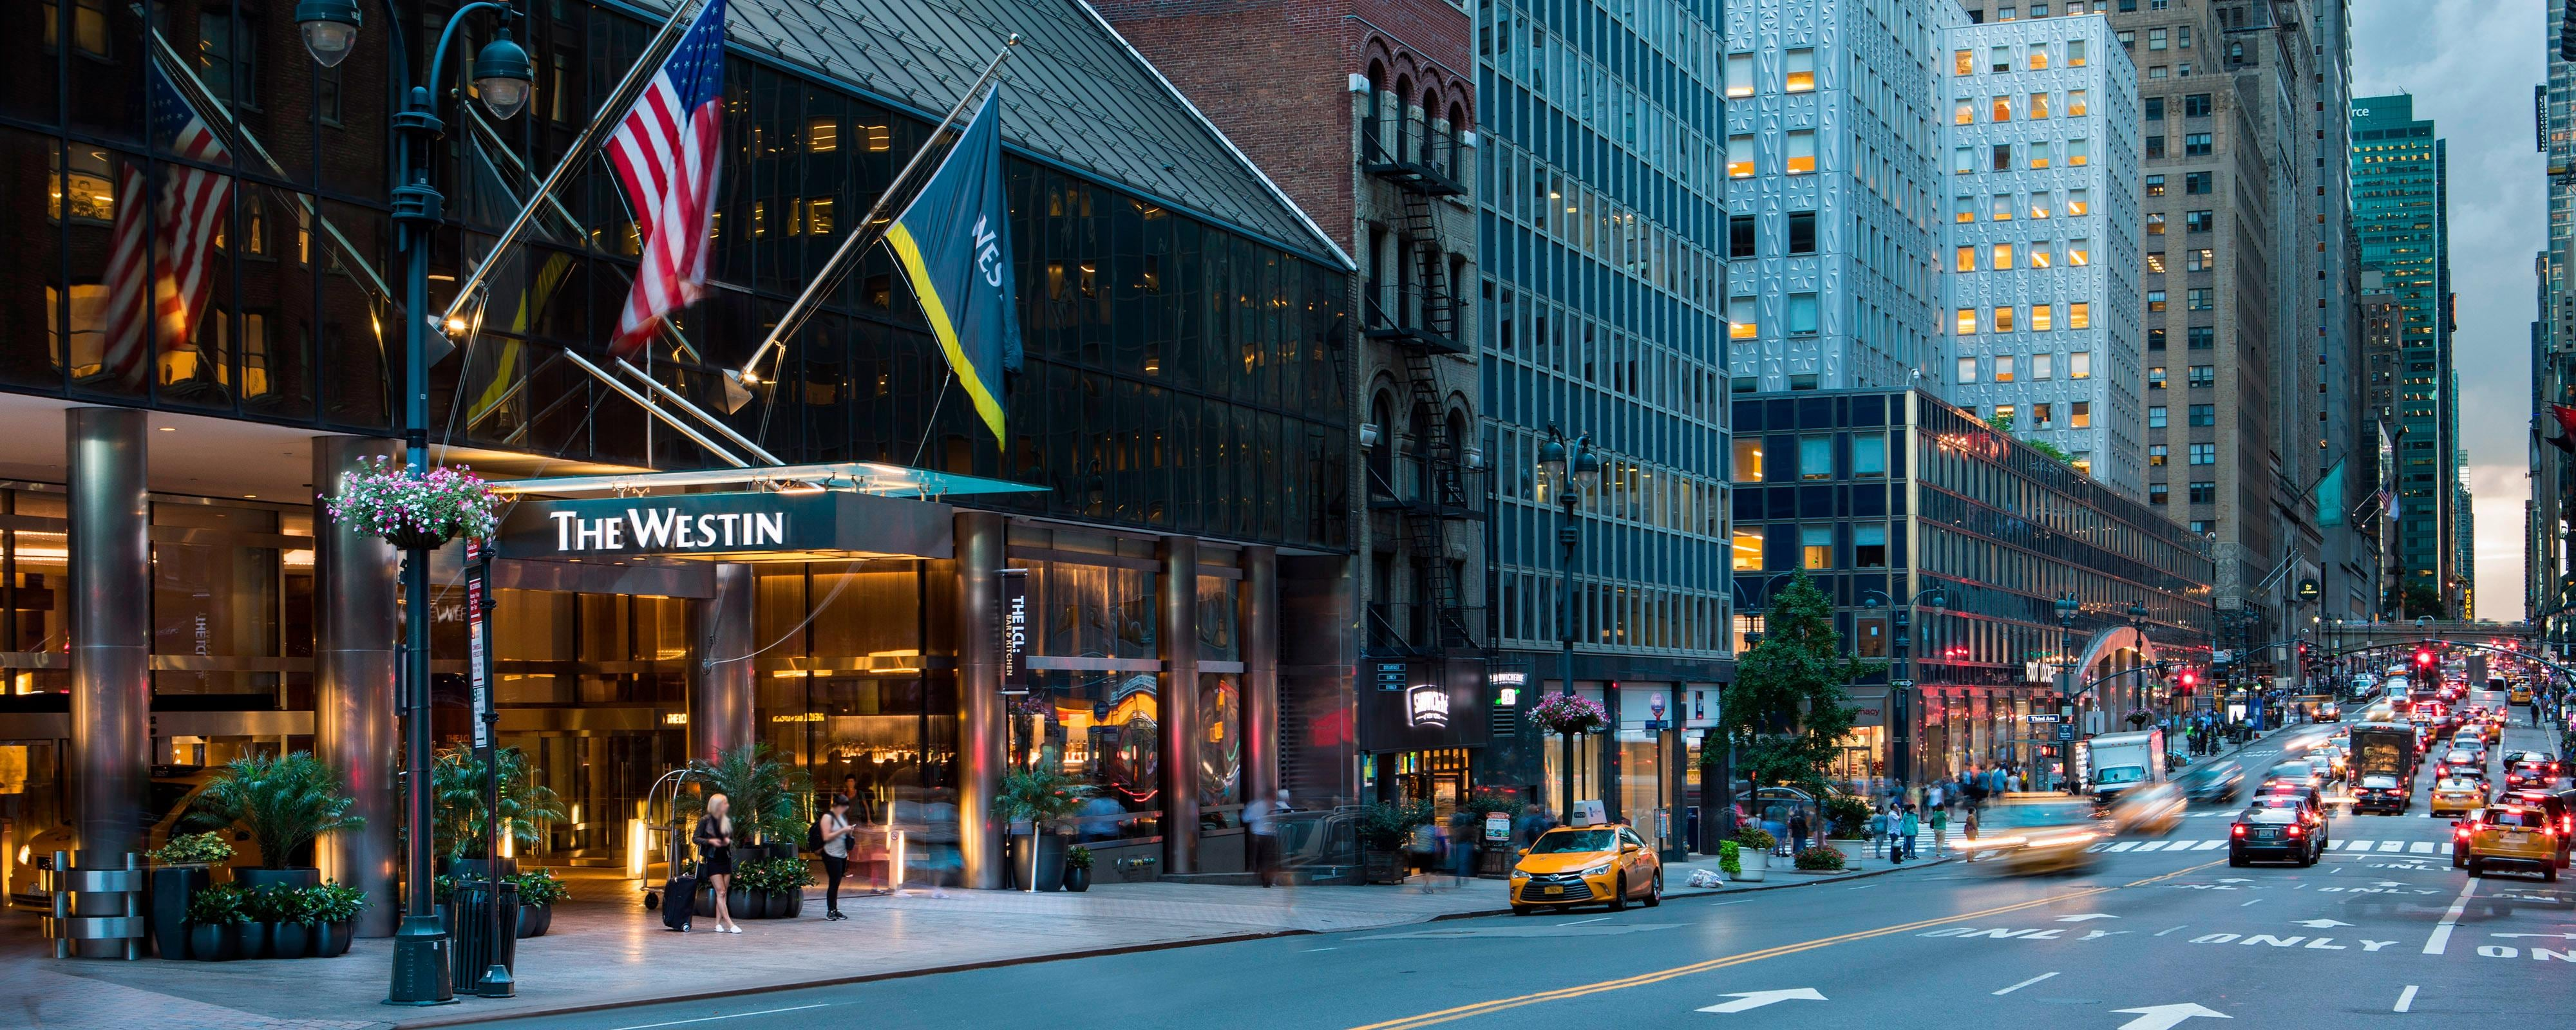 Grand Central Station Hotel | The Westin New York Grand Central